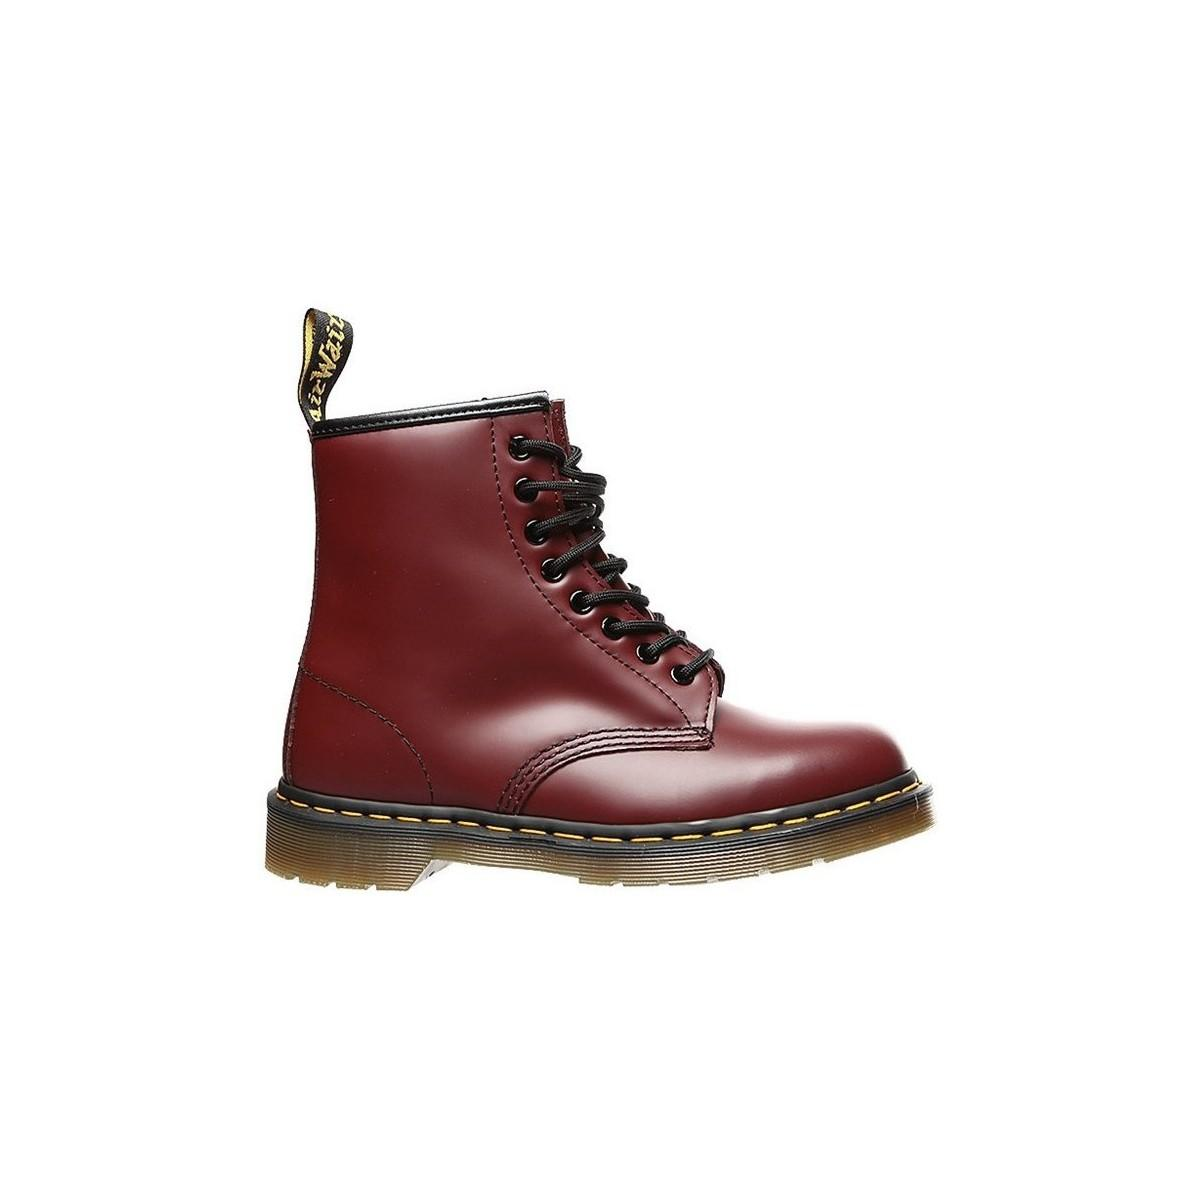 2b02937f03d Dr. Martens Multicolor 1460 Women's Safety Boots In Multicolour